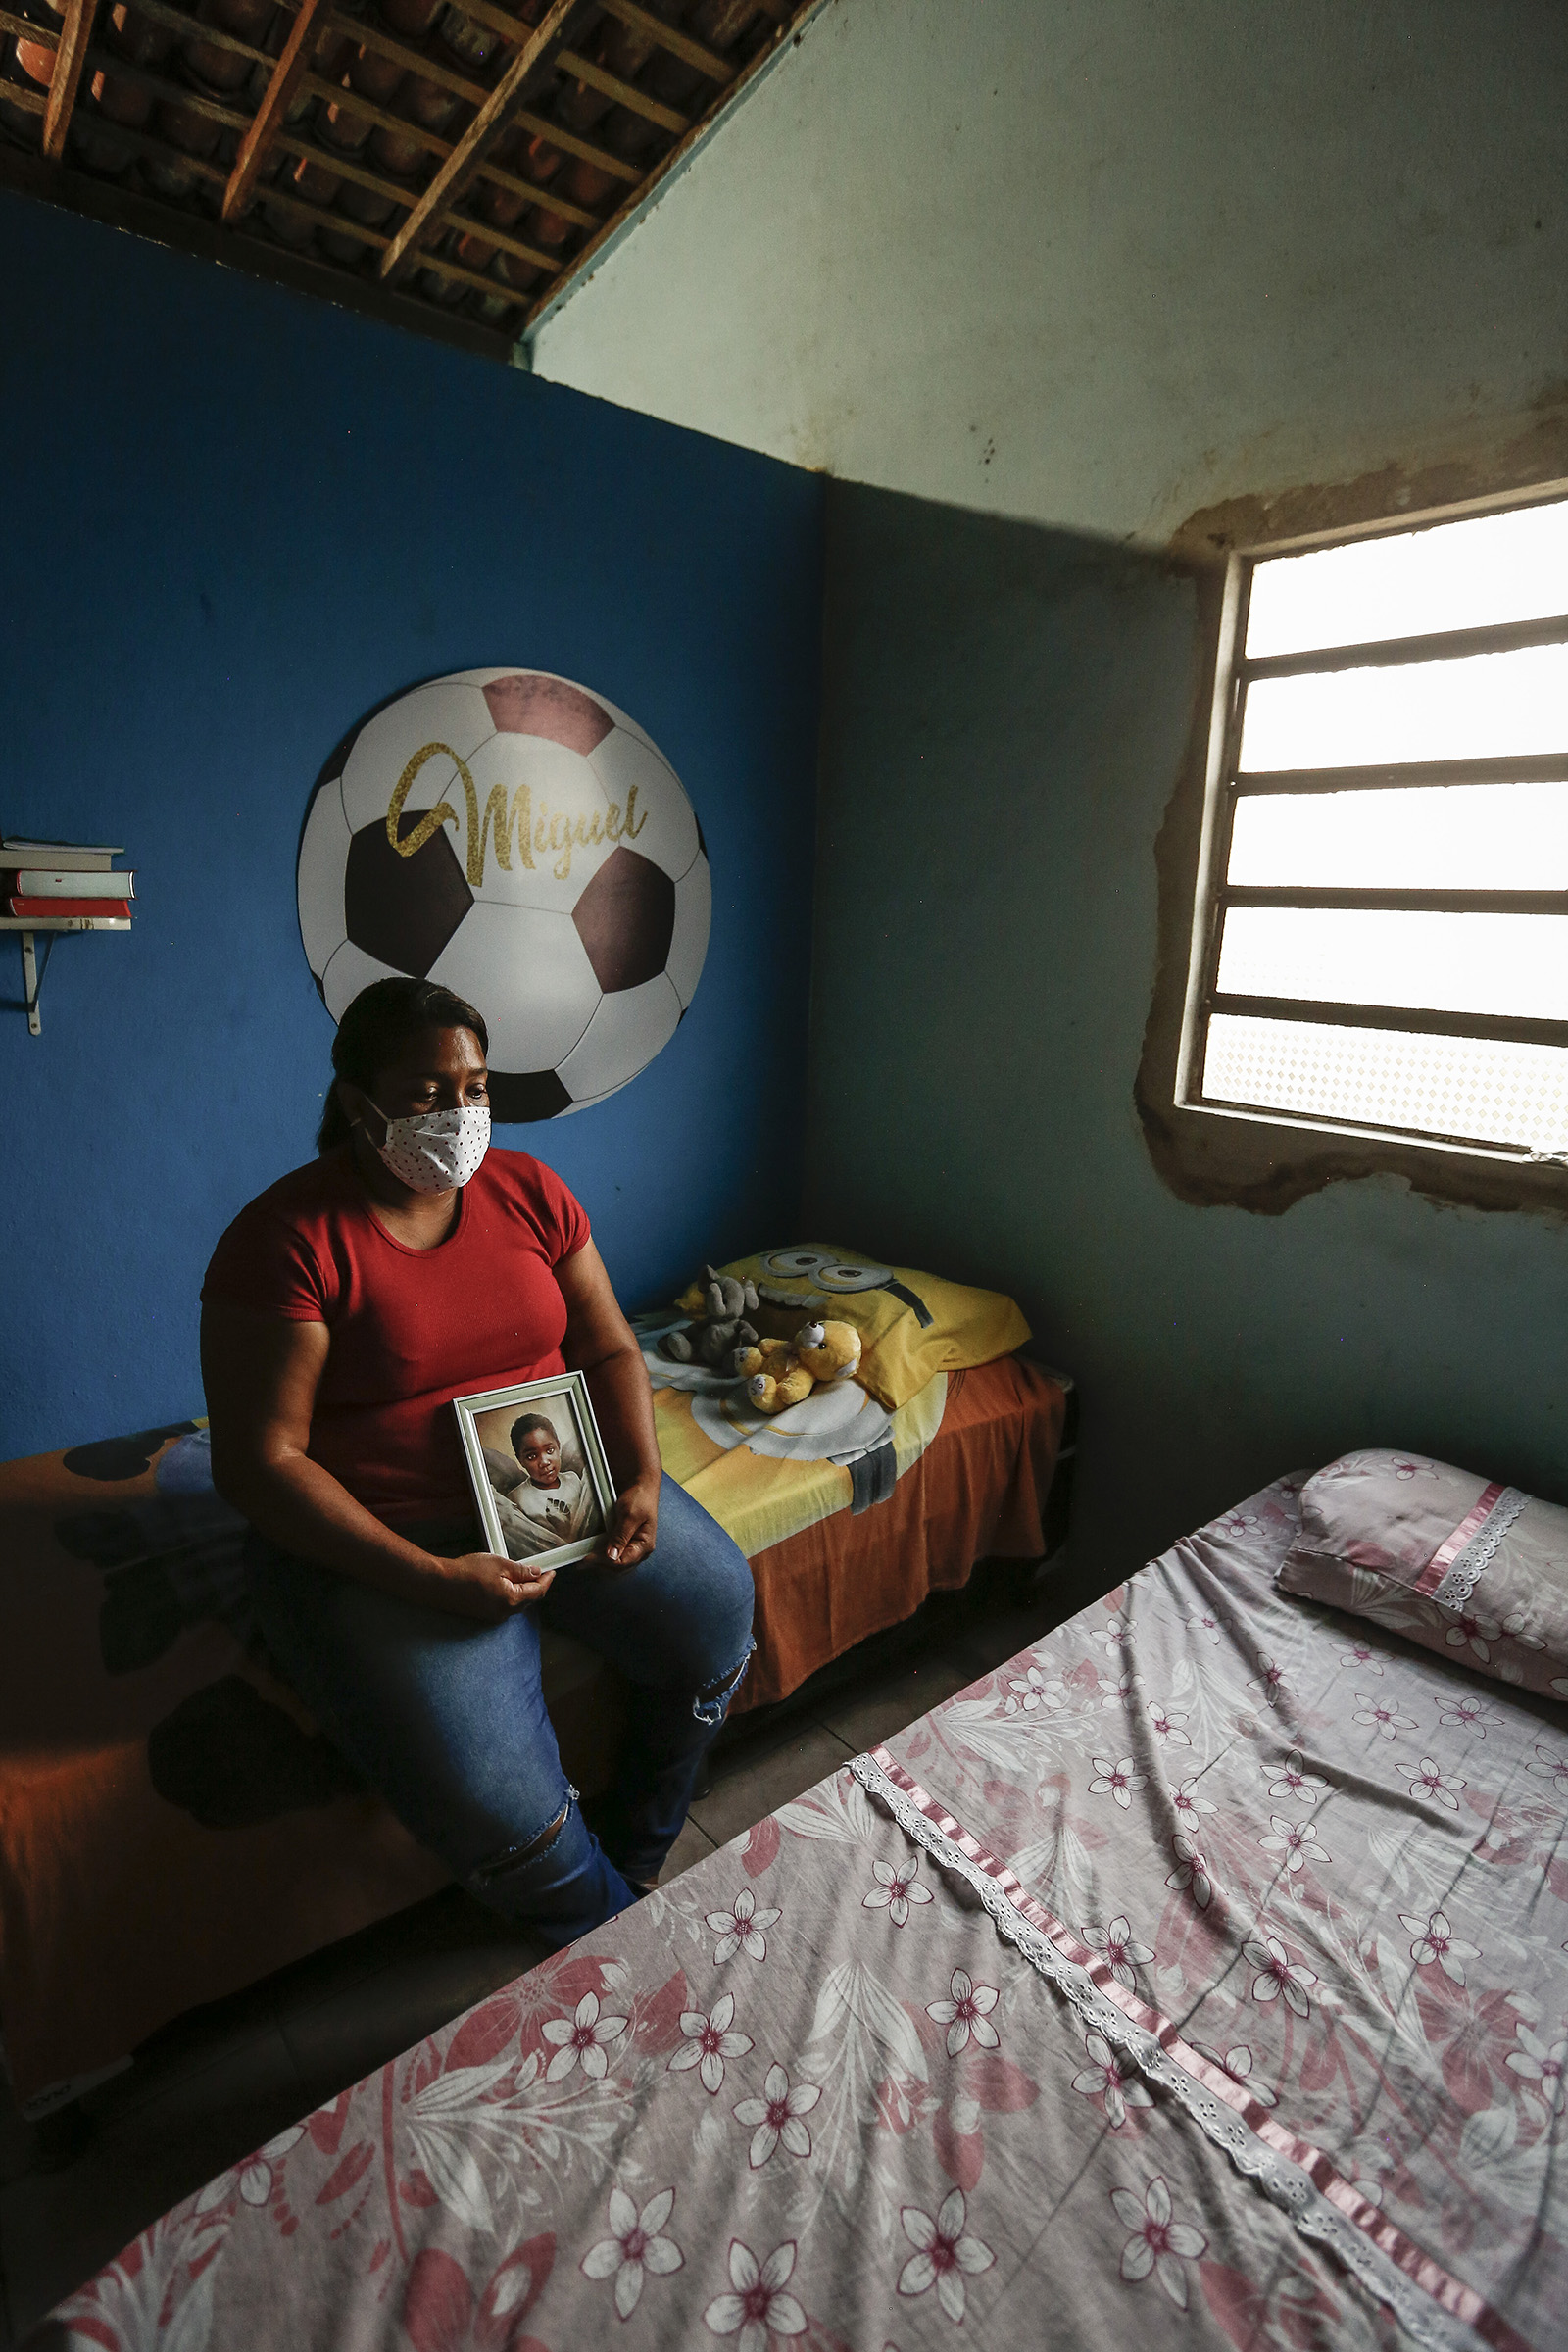 Mirtes Renata Santana de Souza holding a photo of her son Miguel at her home in the neighborhood of Sucupira, south of Recife, Brazil on July 2, 2020.